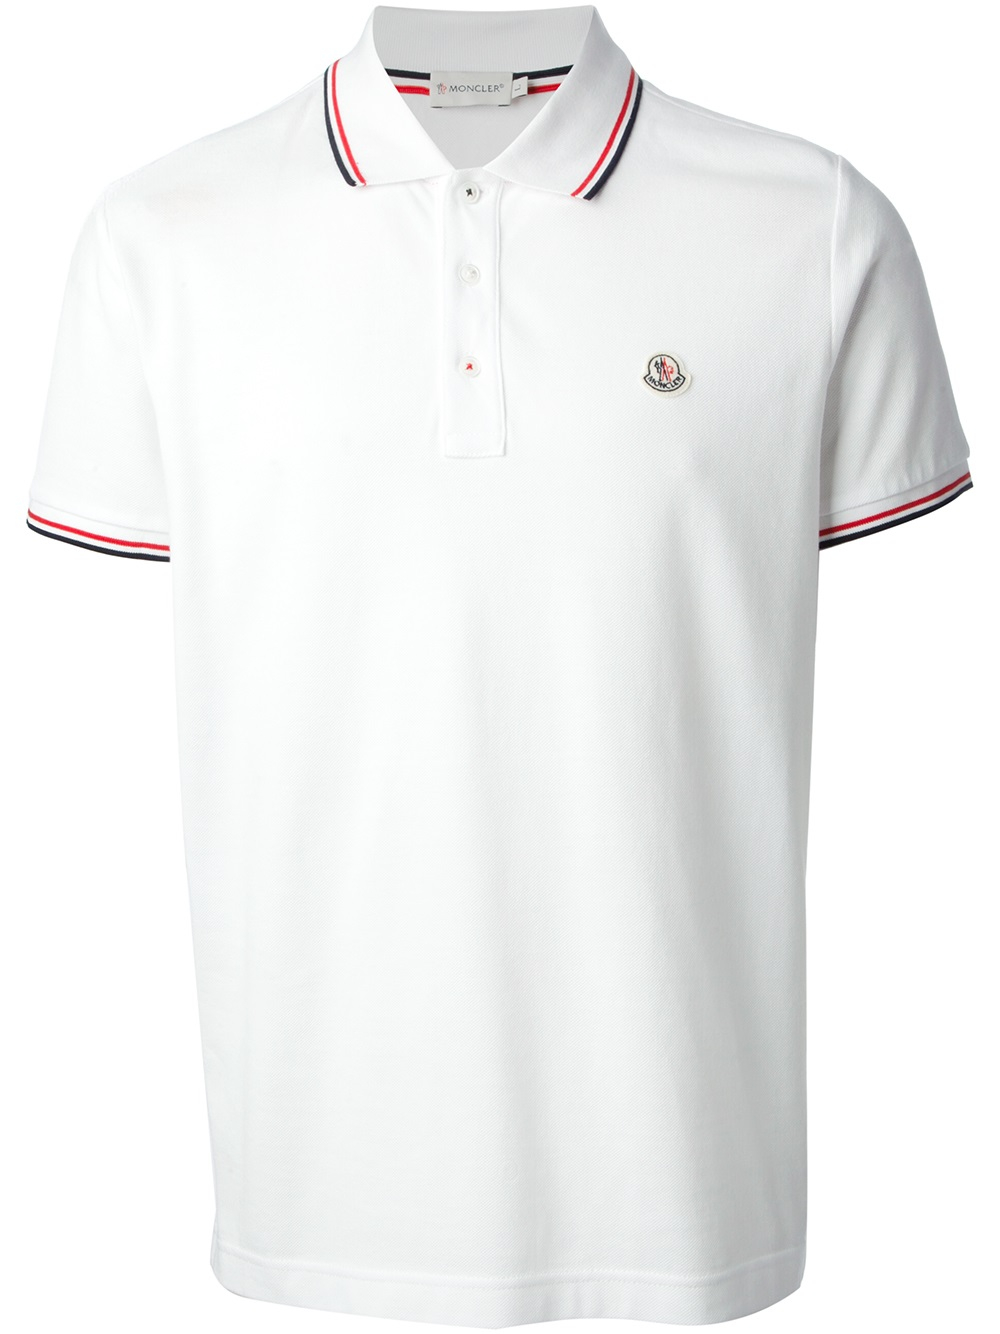 lyst moncler polo shirt in white for men. Black Bedroom Furniture Sets. Home Design Ideas